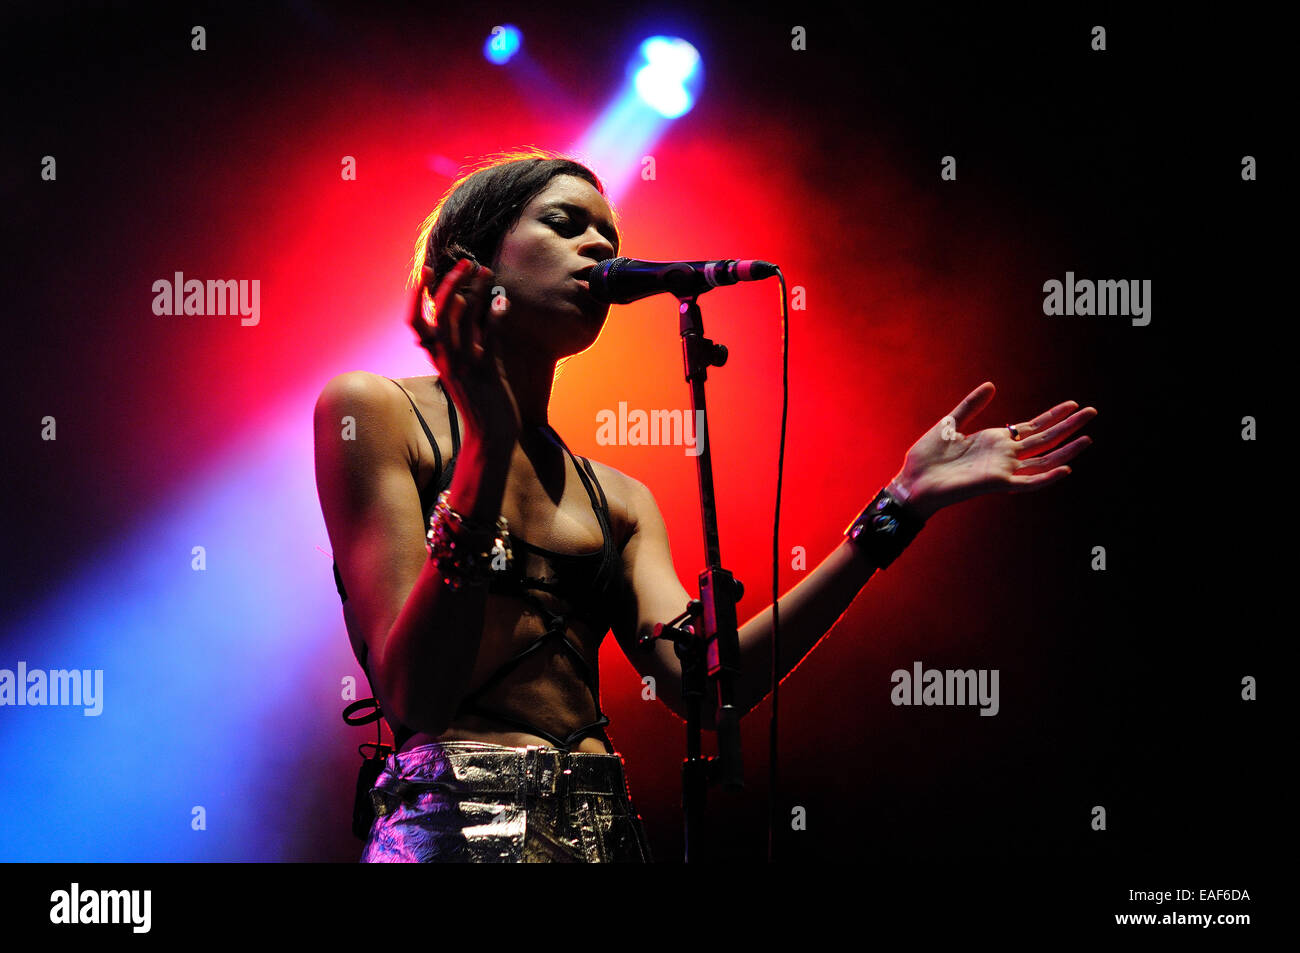 BENICASIM, SPAIN - JULY 21: AlunaGeorge, English electronic music duo, concert performance at FIB. - Stock Image